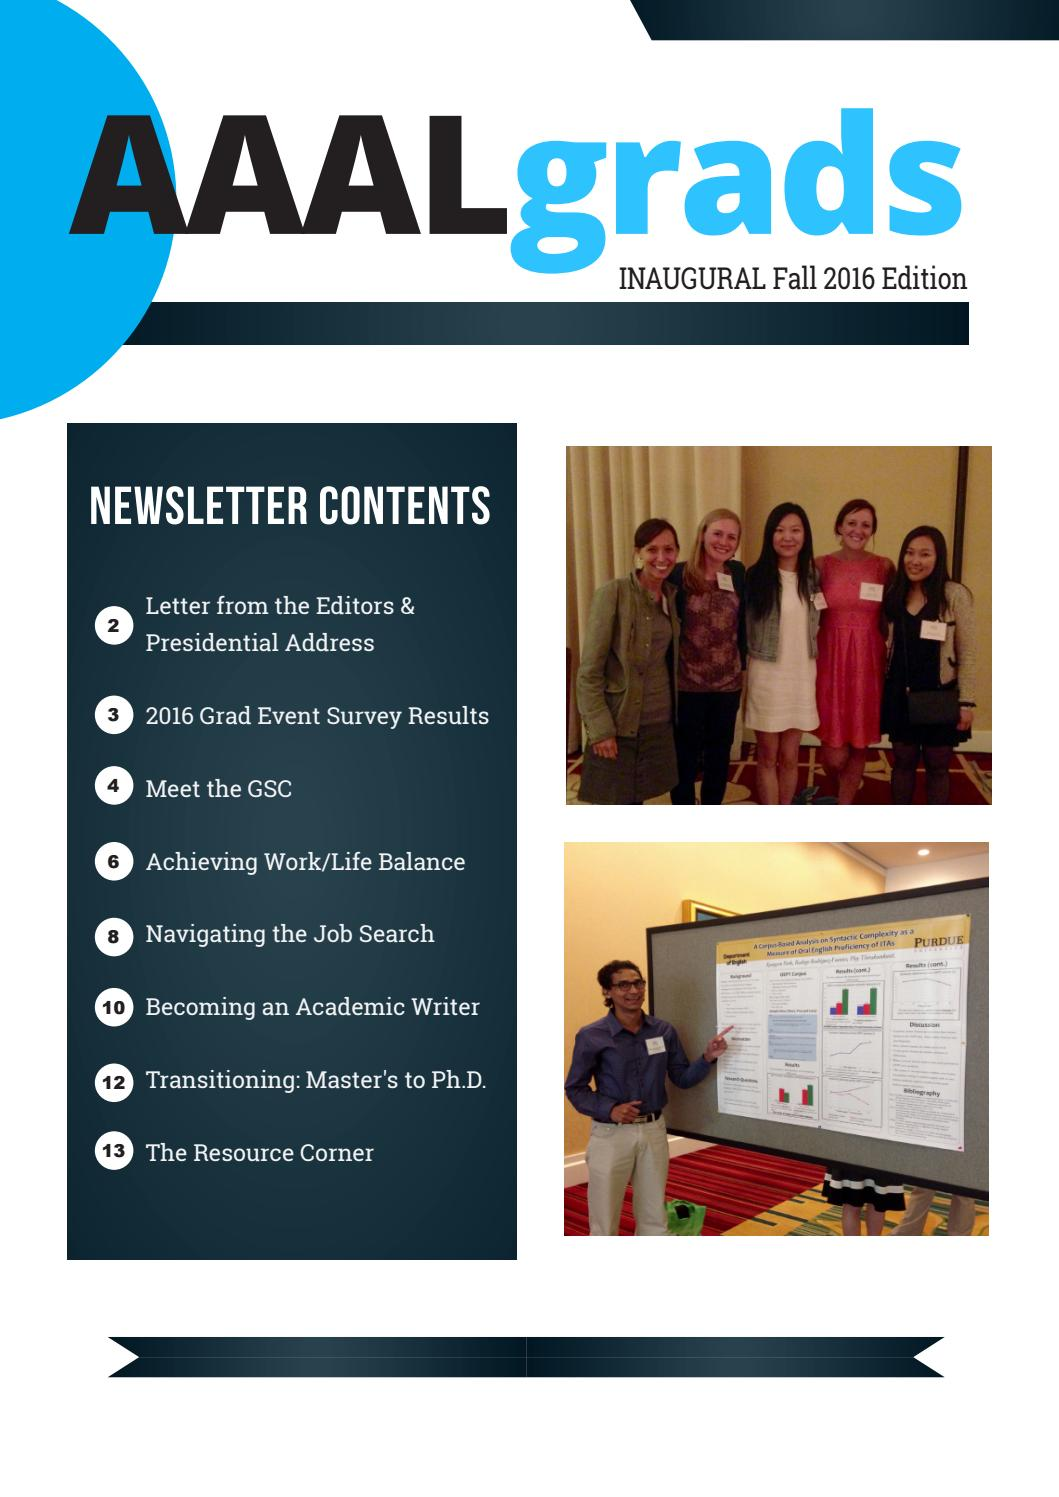 aaalgrad fall 2016 newsletter by laura hamman issuu